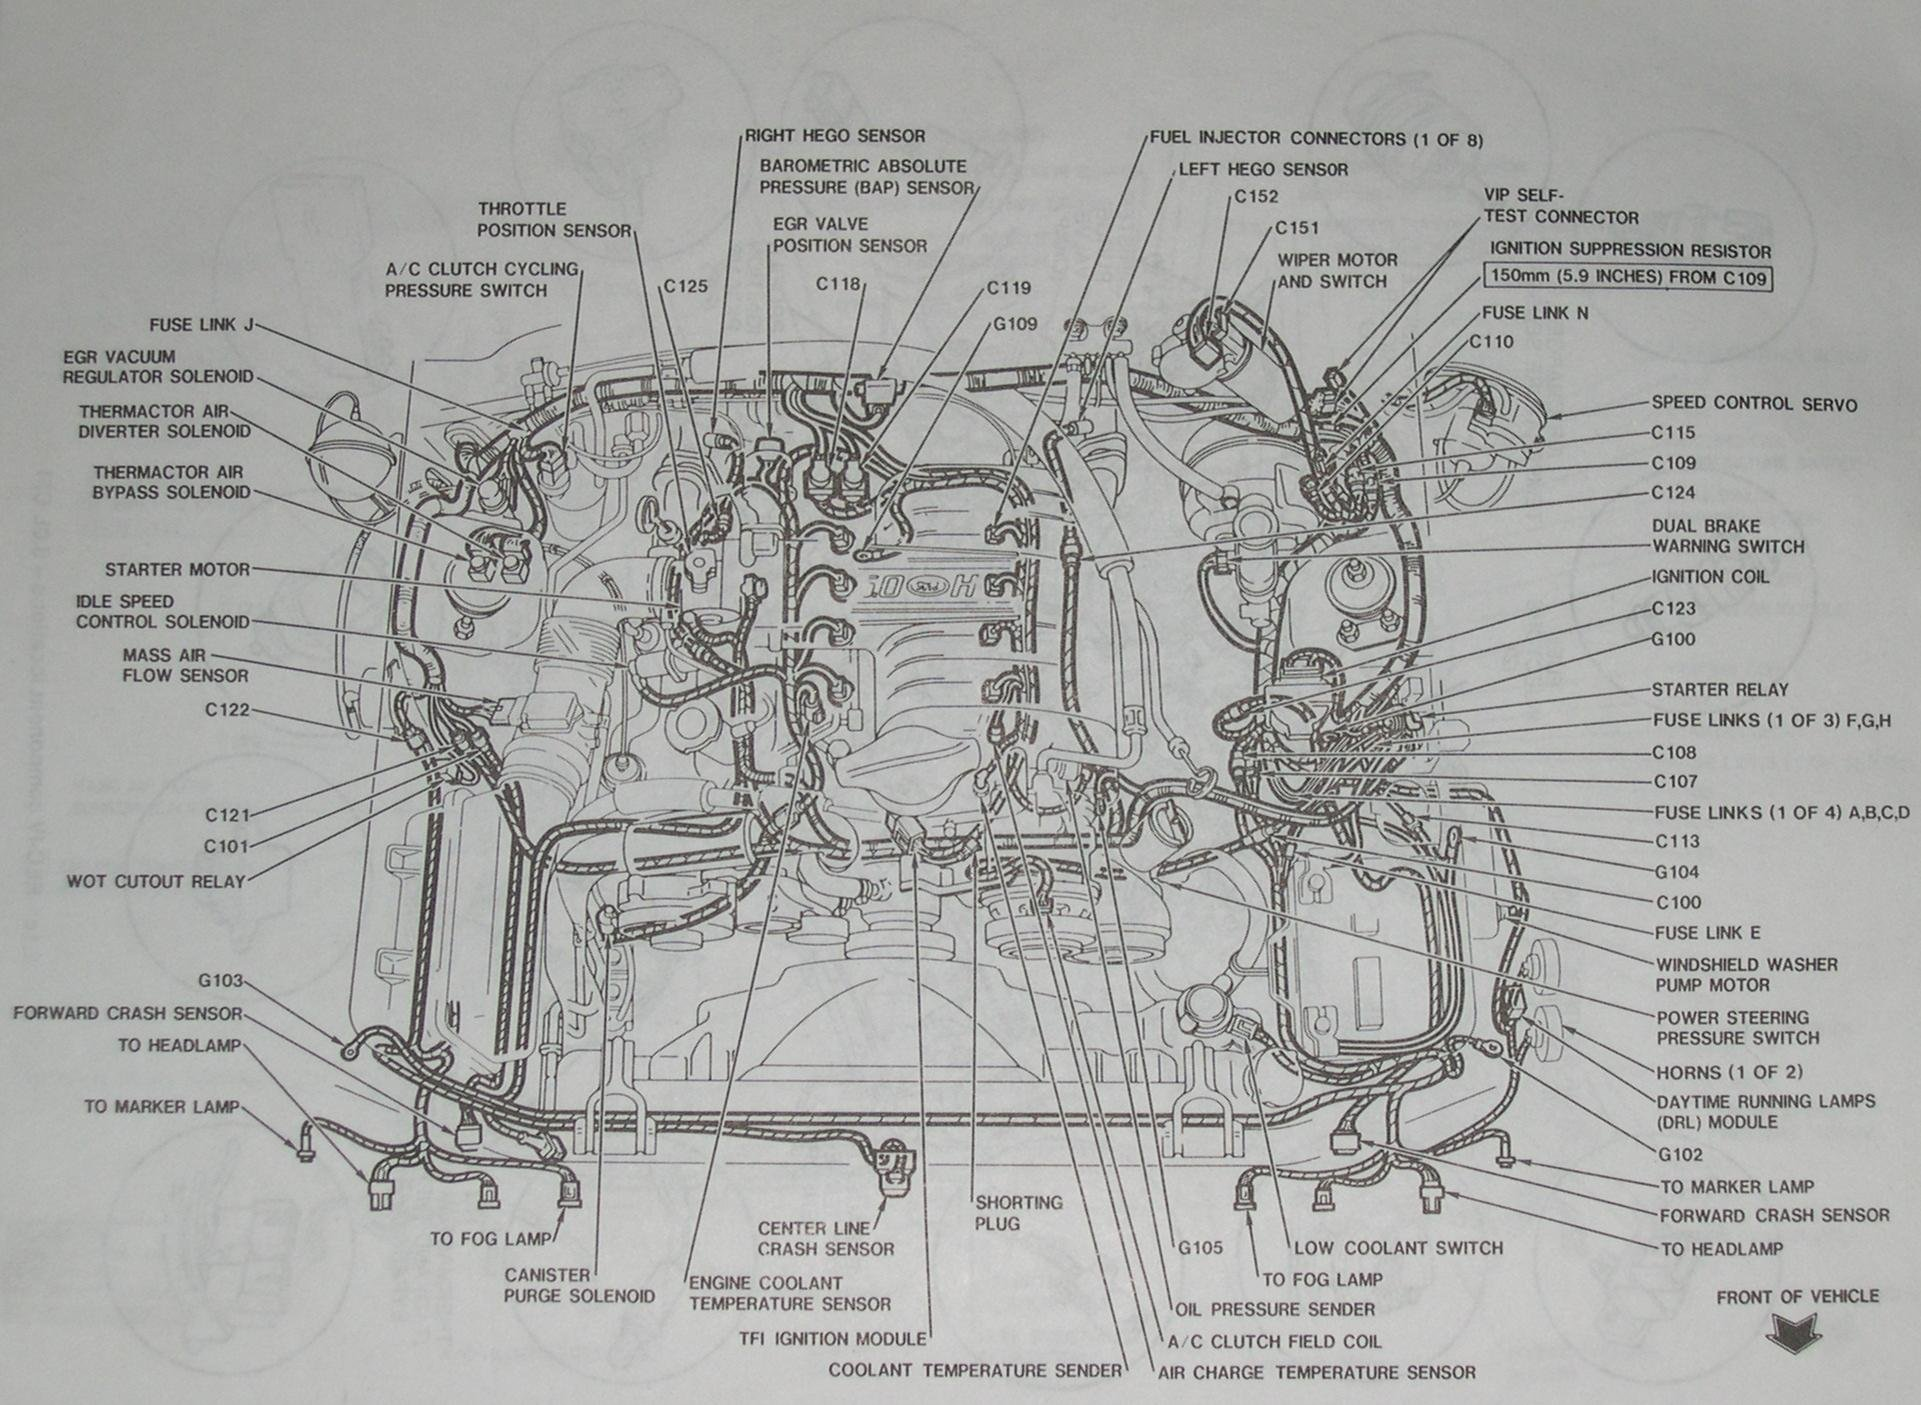 ford mustang shaker 500 radio wiring diagram ford engine ford mustang shaker 500 radio wiring diagram ford engine wiring diagram 06